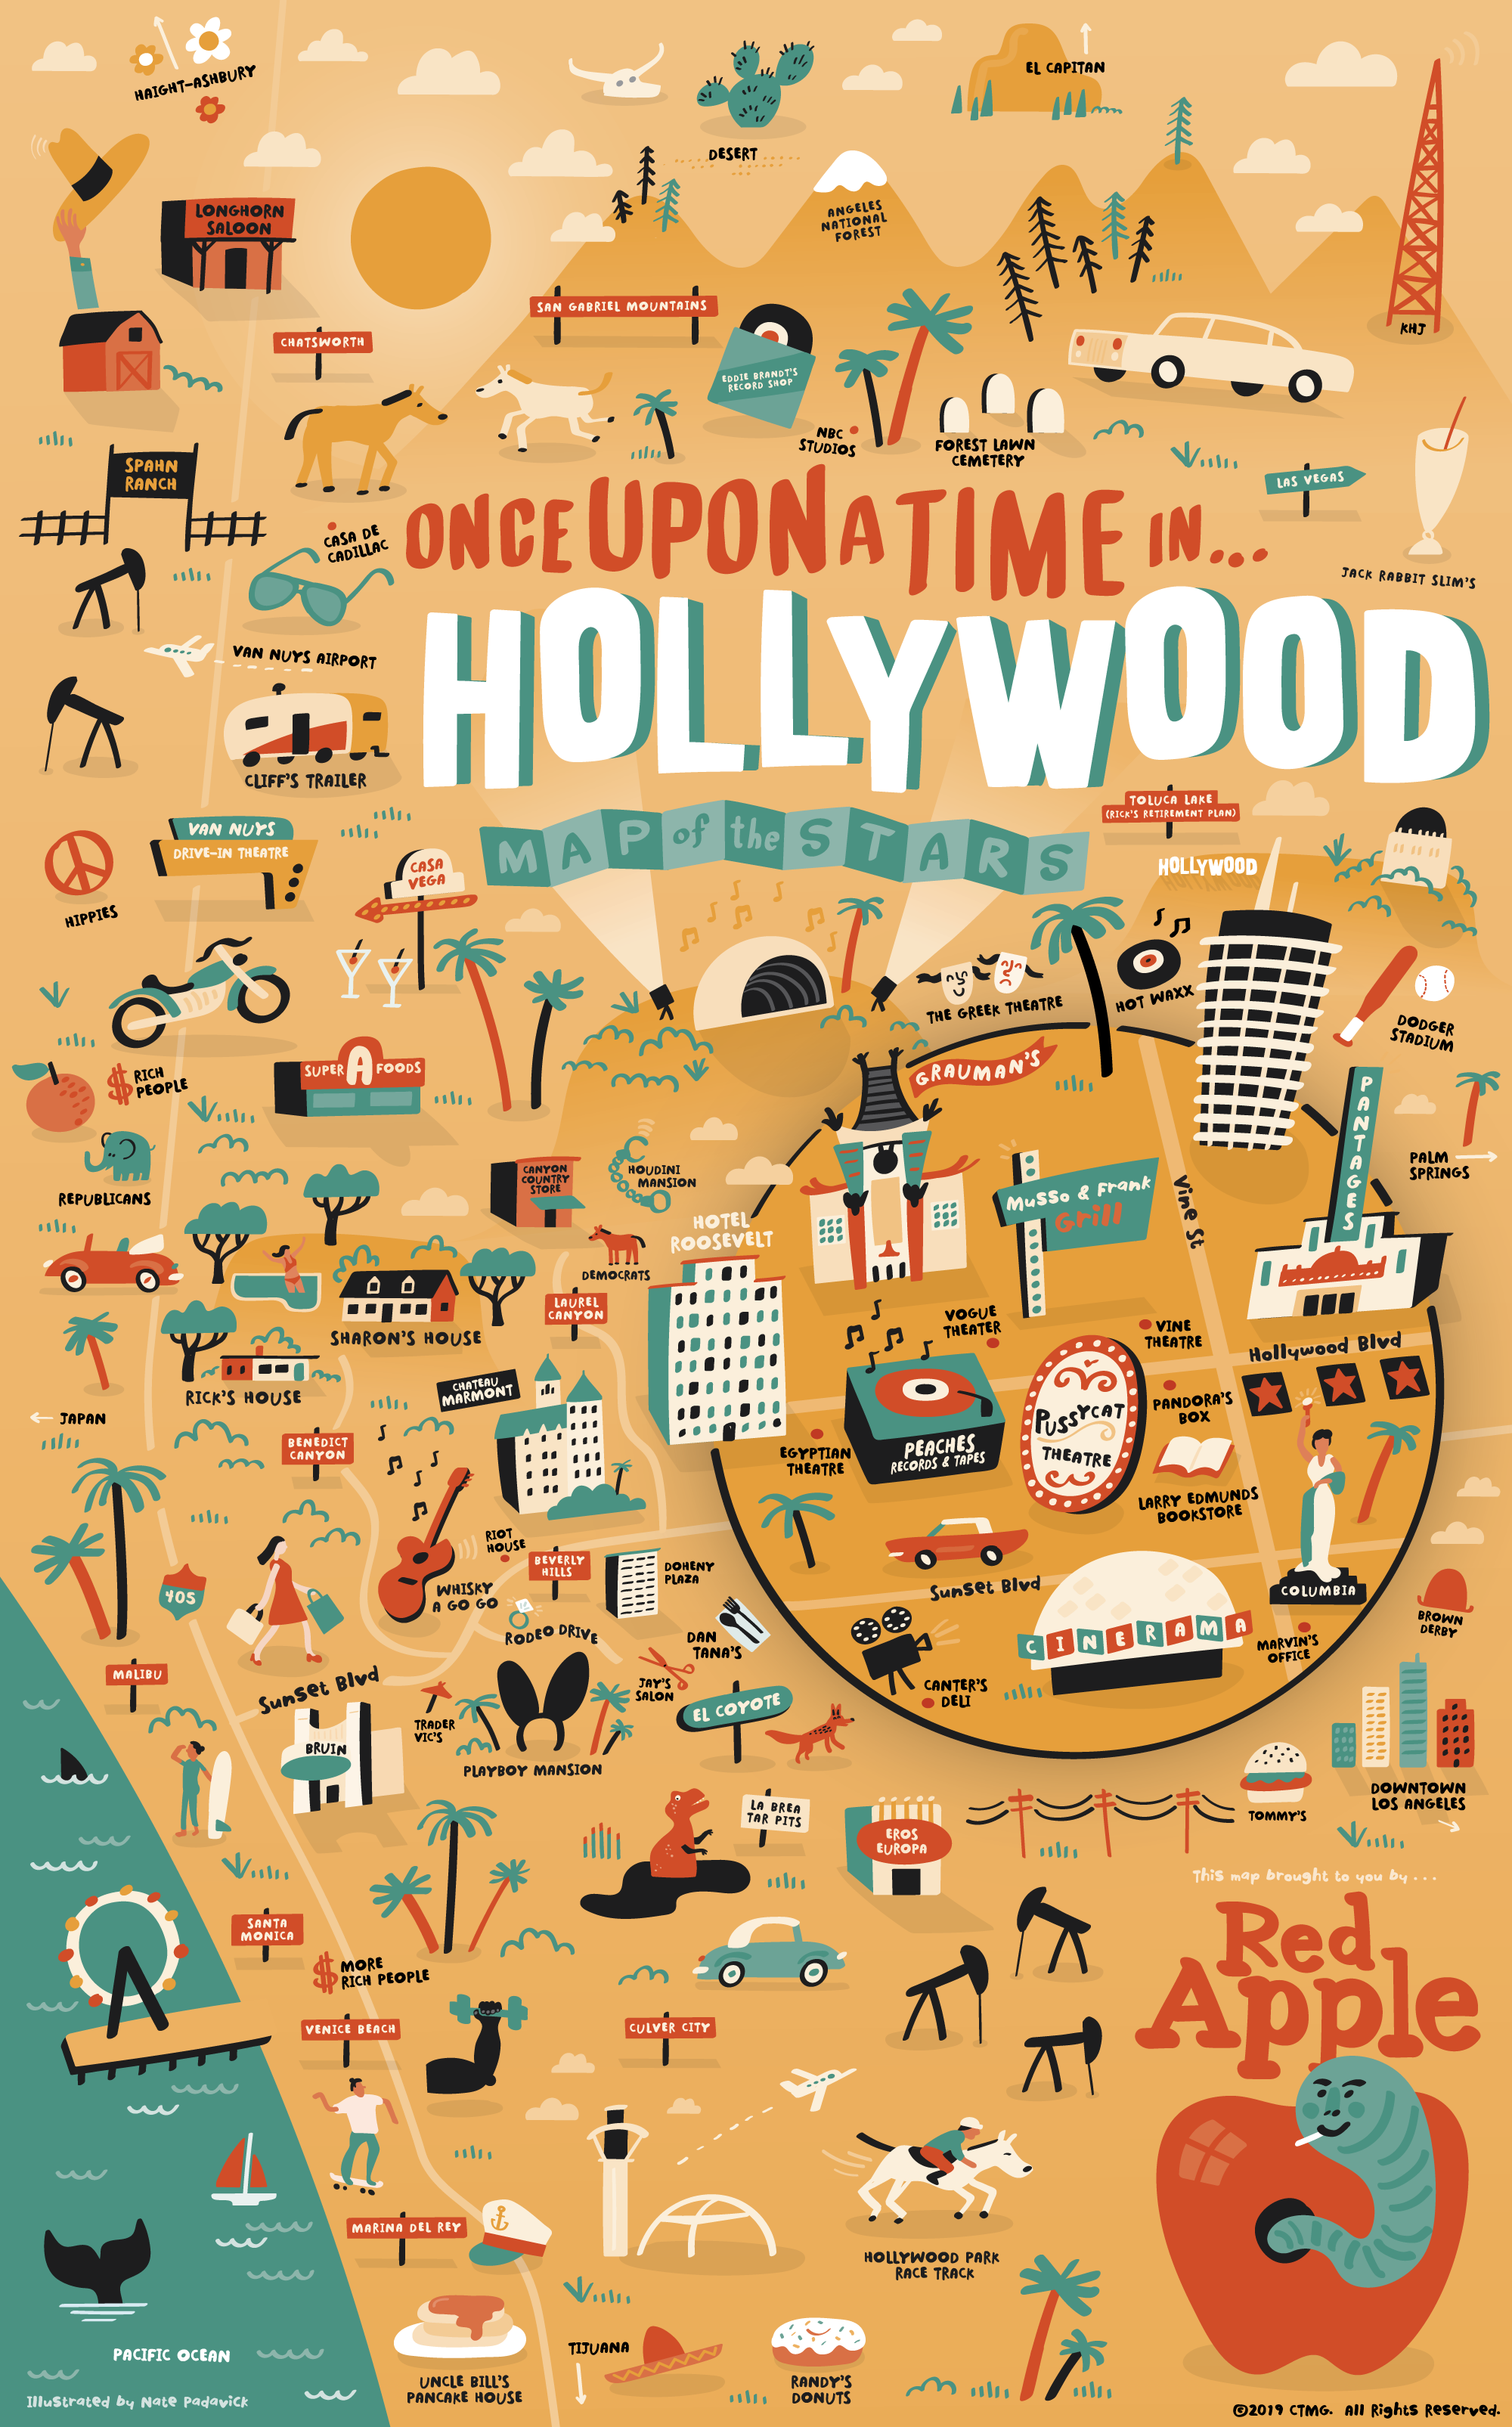 ONCE-UPON-A-TIME-IN-HOLLYWOOD-ILLUSTRATED-MAP-BY-NATE-PADAVICK-promo.png